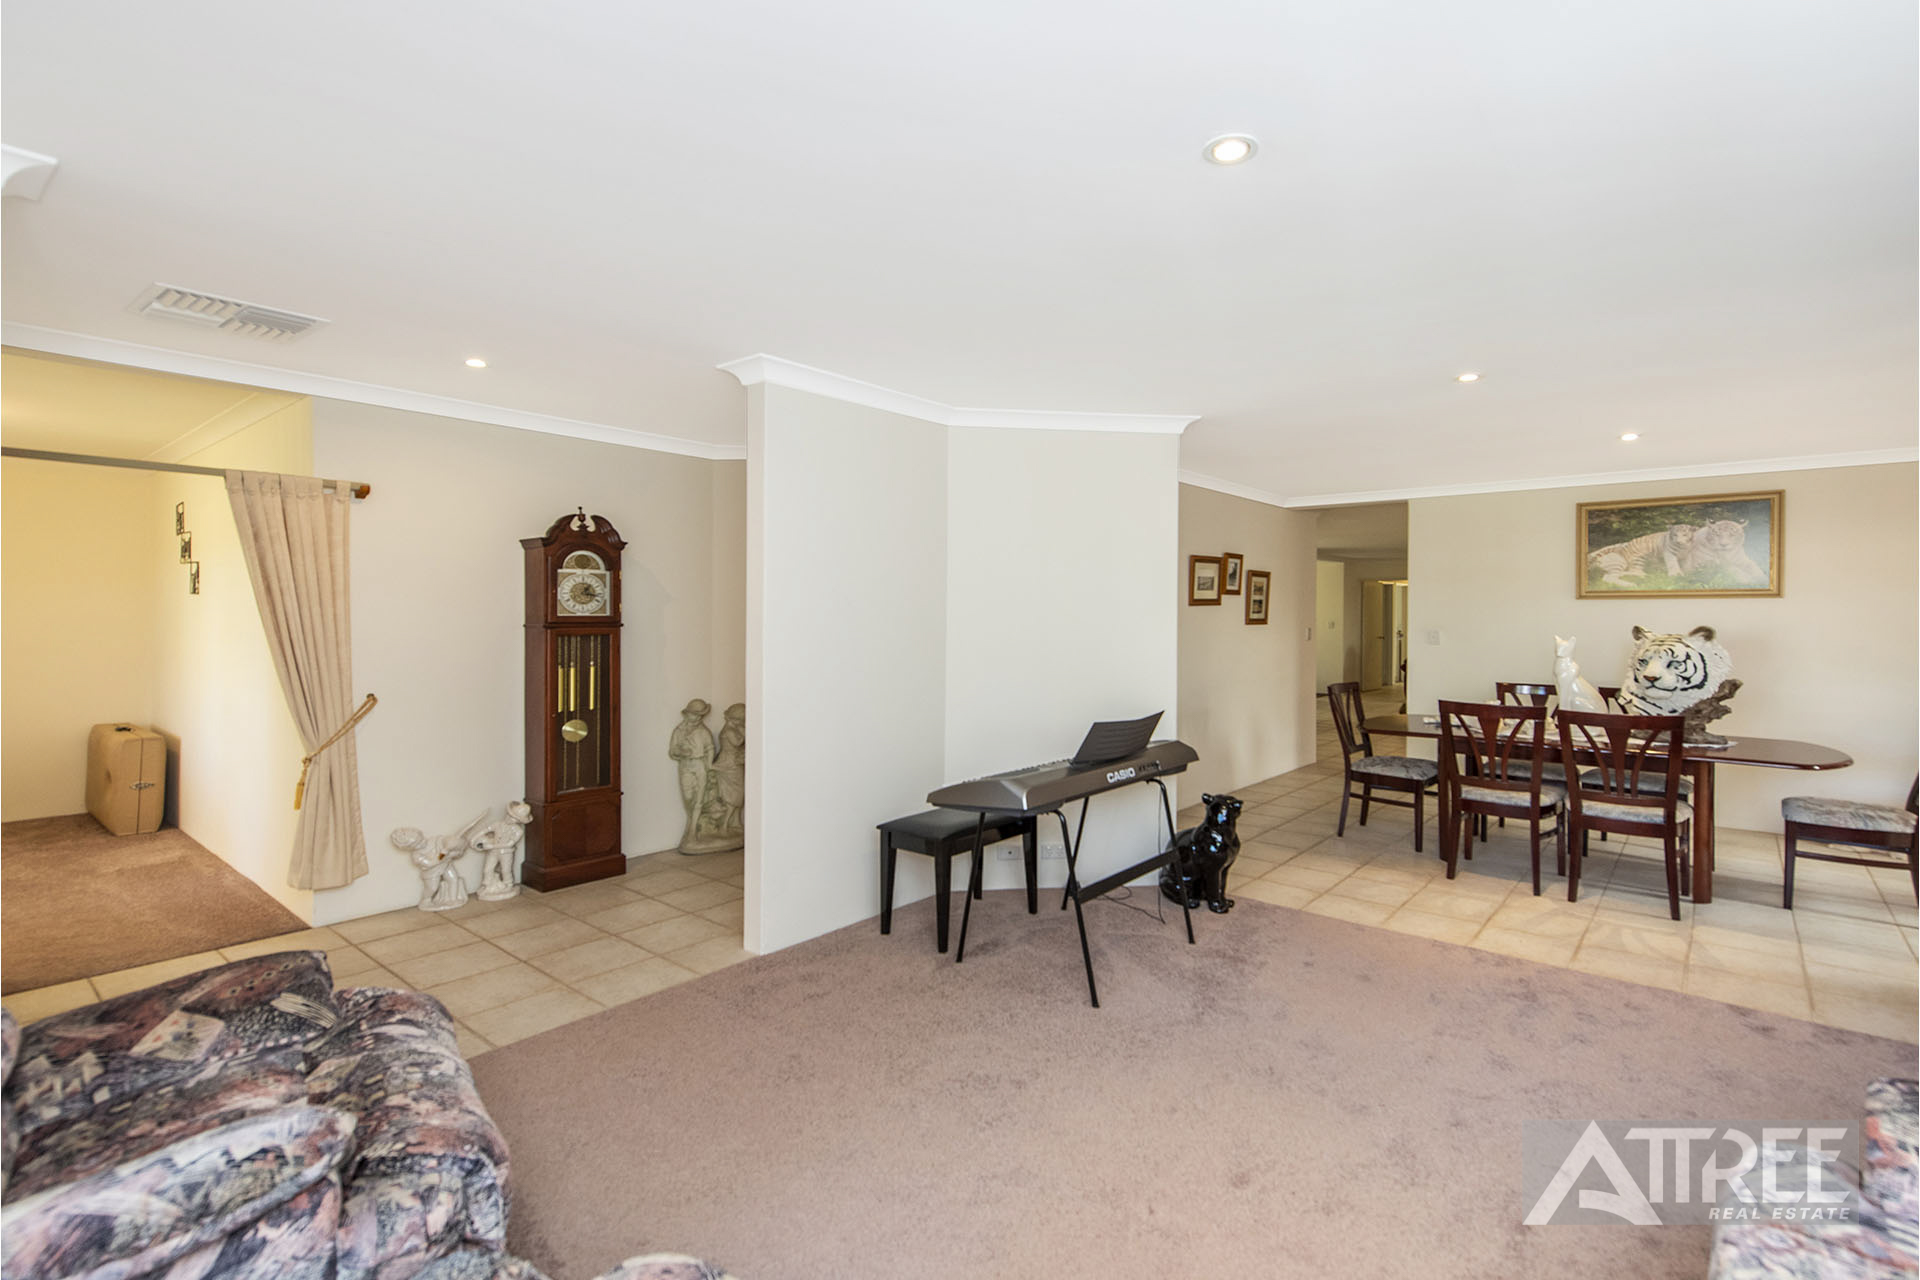 Property for sale in CANNING VALE, 4 Kanani Drive : Attree Real Estate